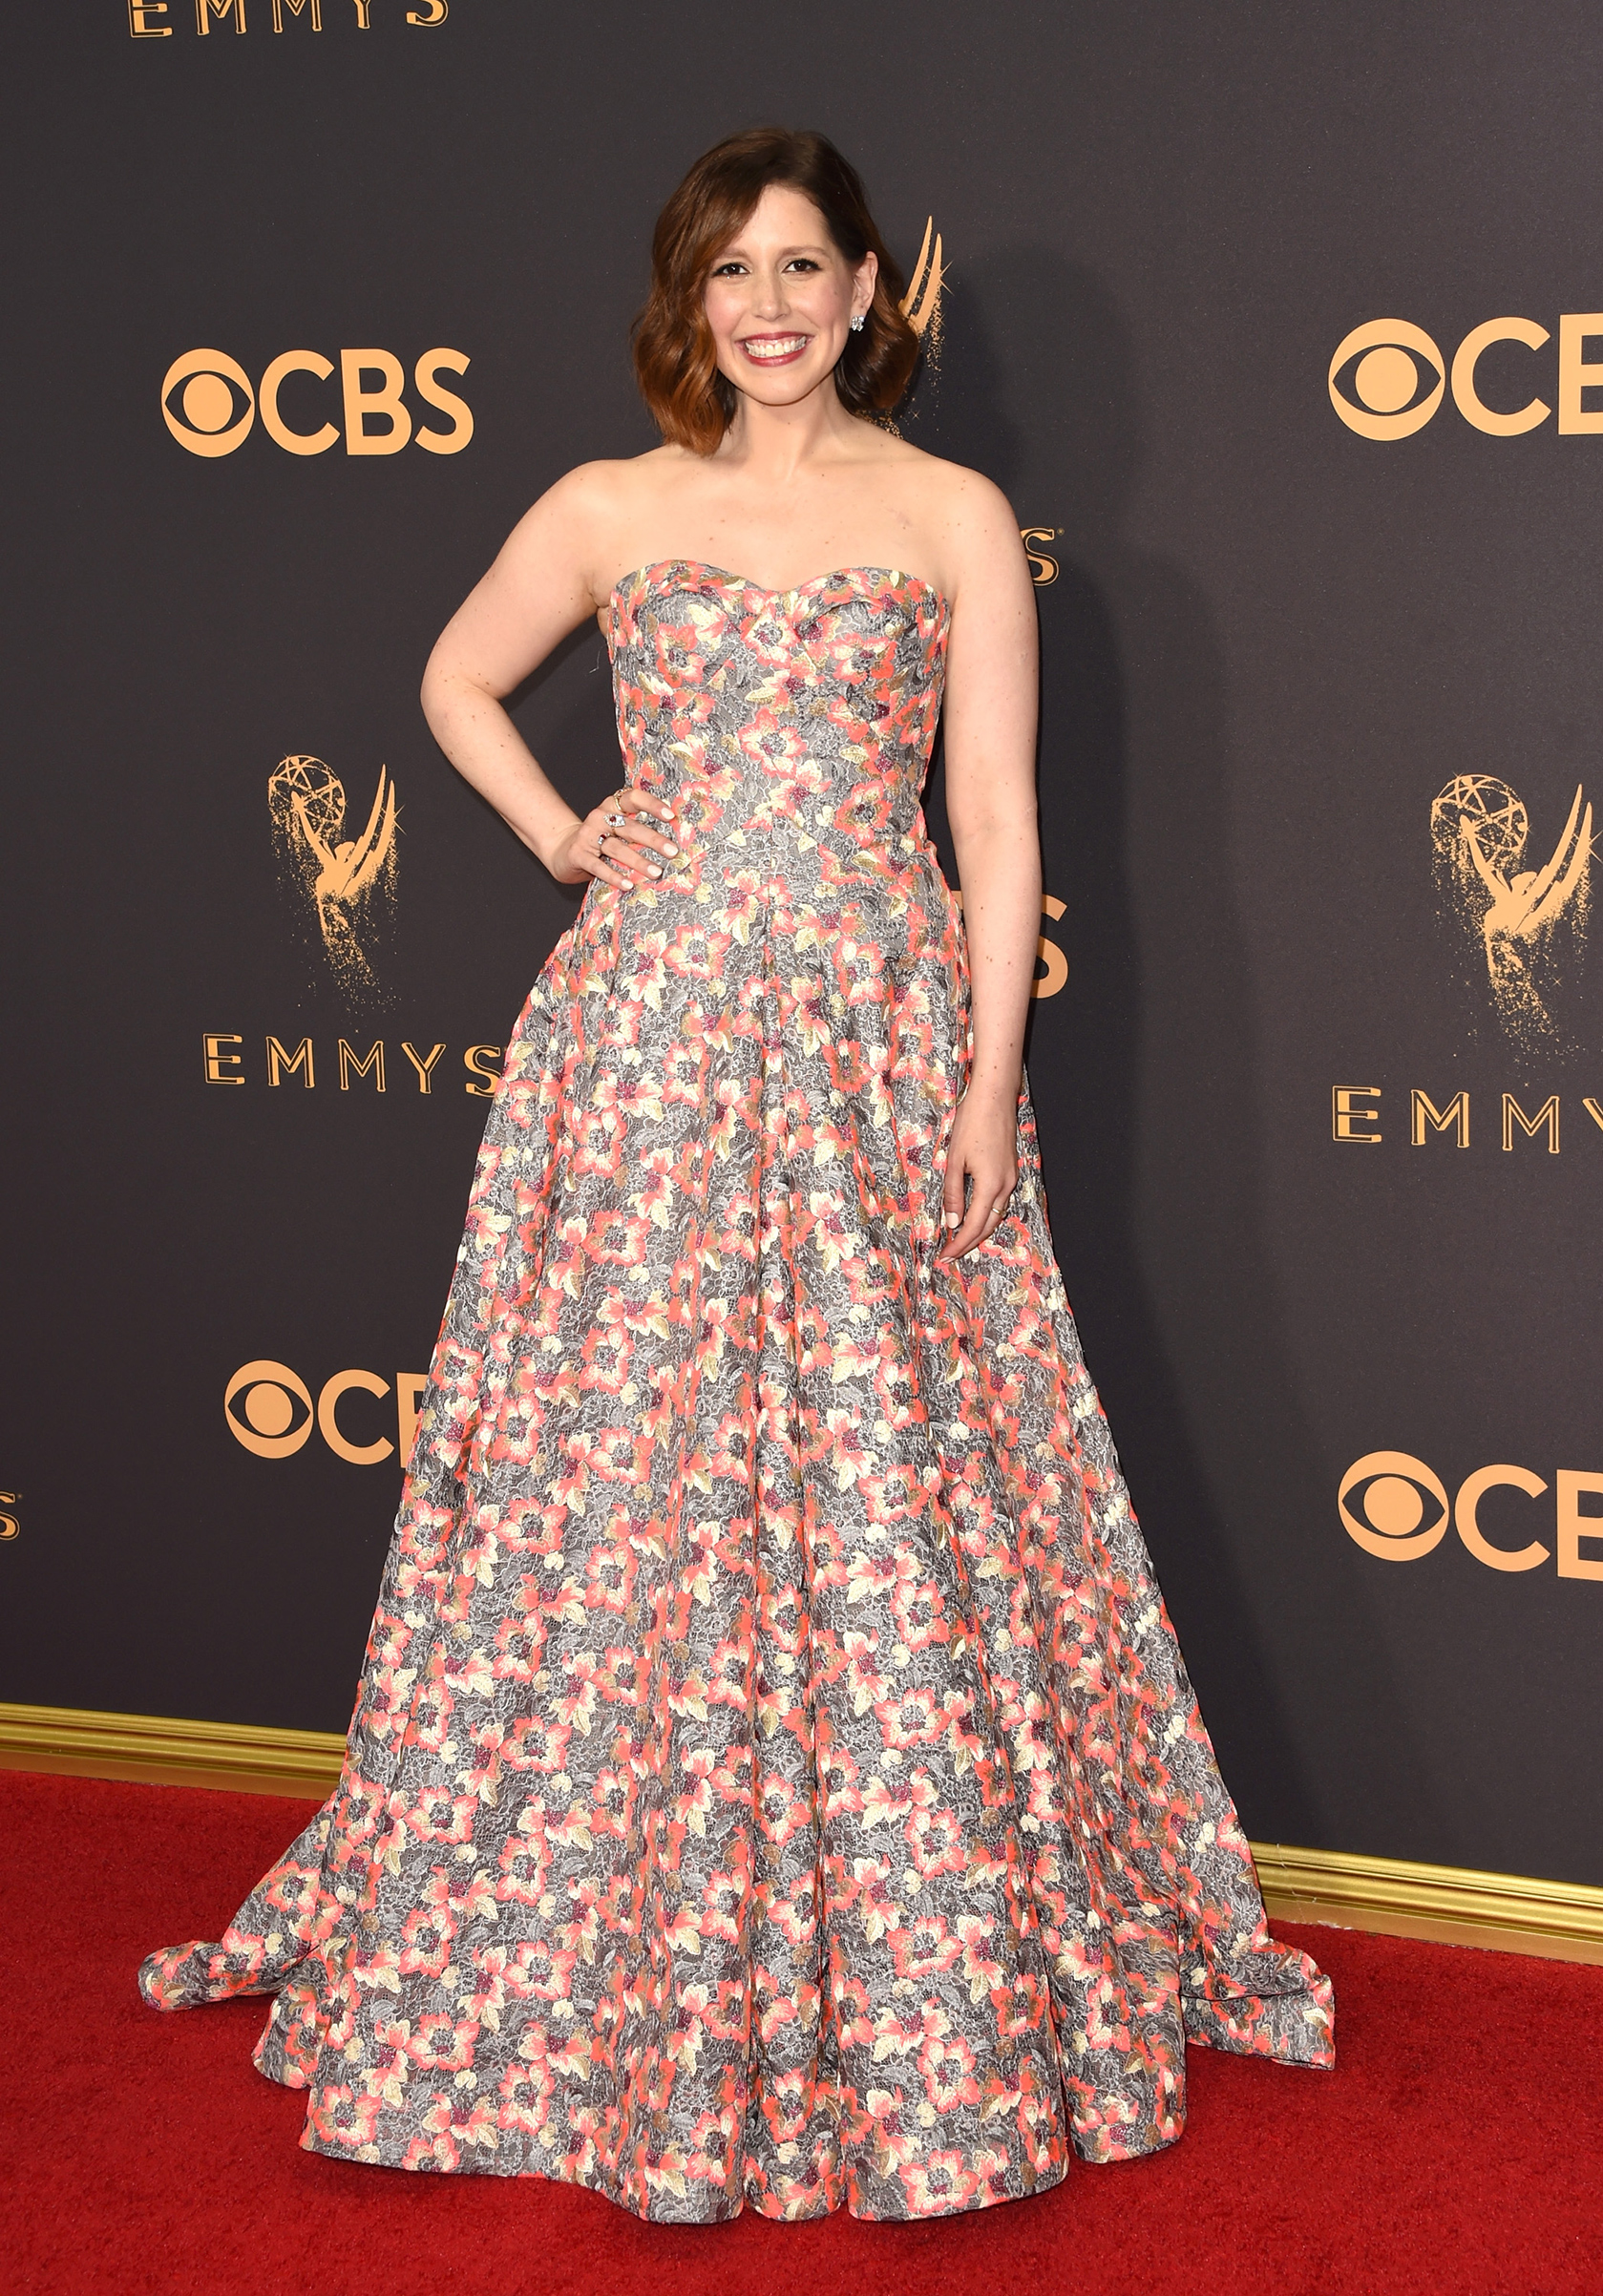 Actor Vanessa Bayer attends the 69th Annual Primetime Emmy Awards at Microsoft Theater on September 17, 2017 in Los Angeles, California.